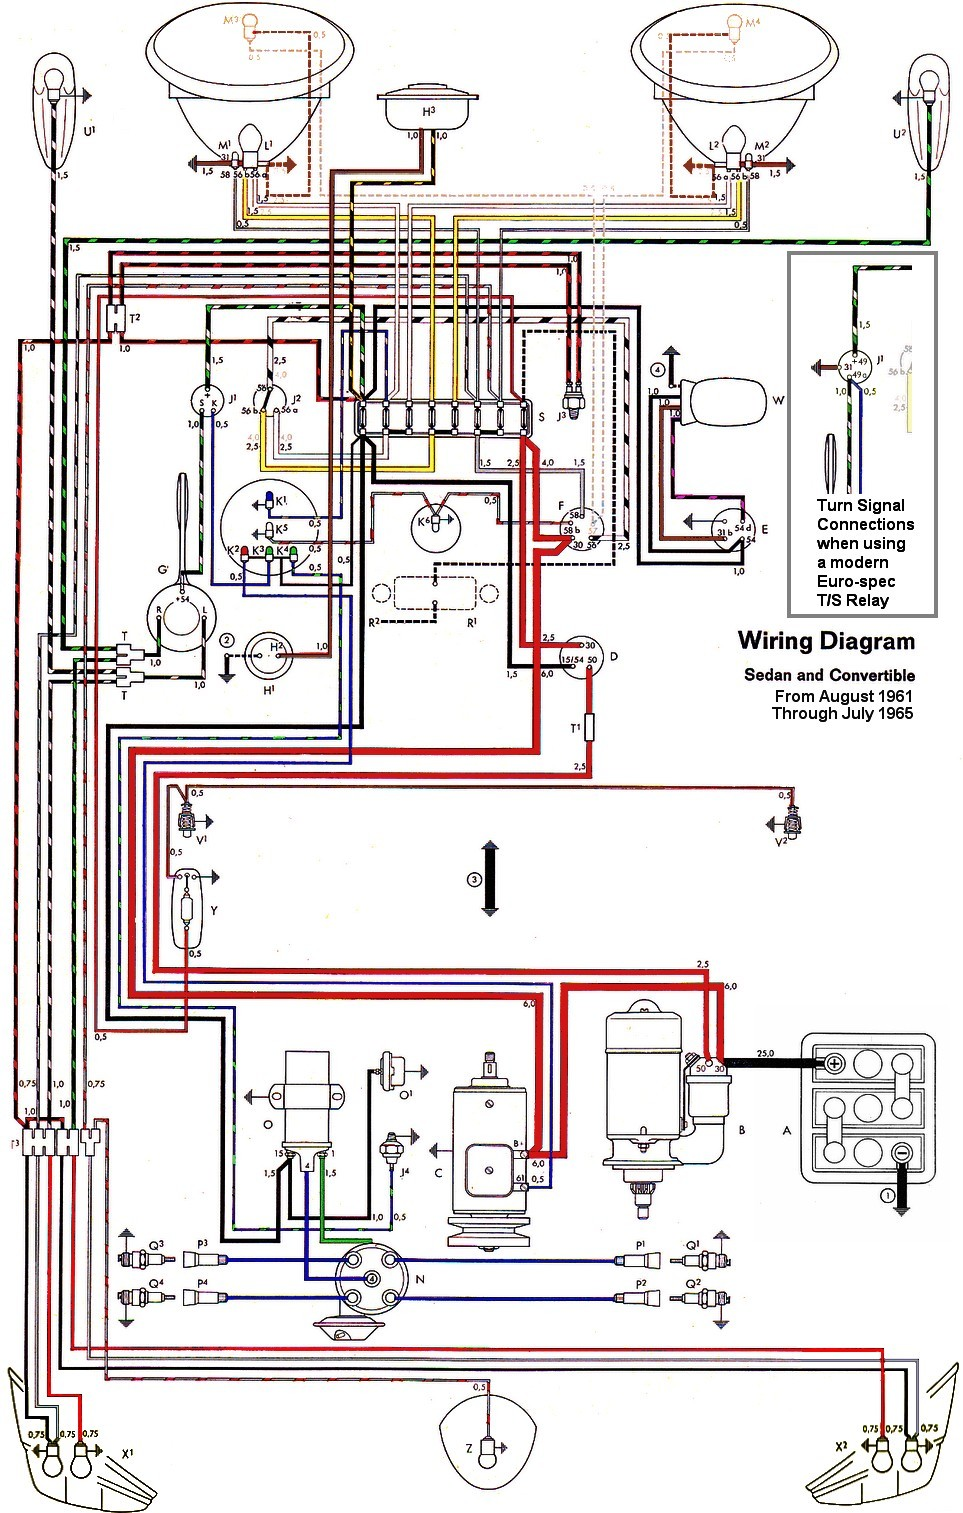 hight resolution of thesamba com type 1 wiring diagrams 71 super beetle wiring diagram 1971 vw beetle wiring diagram